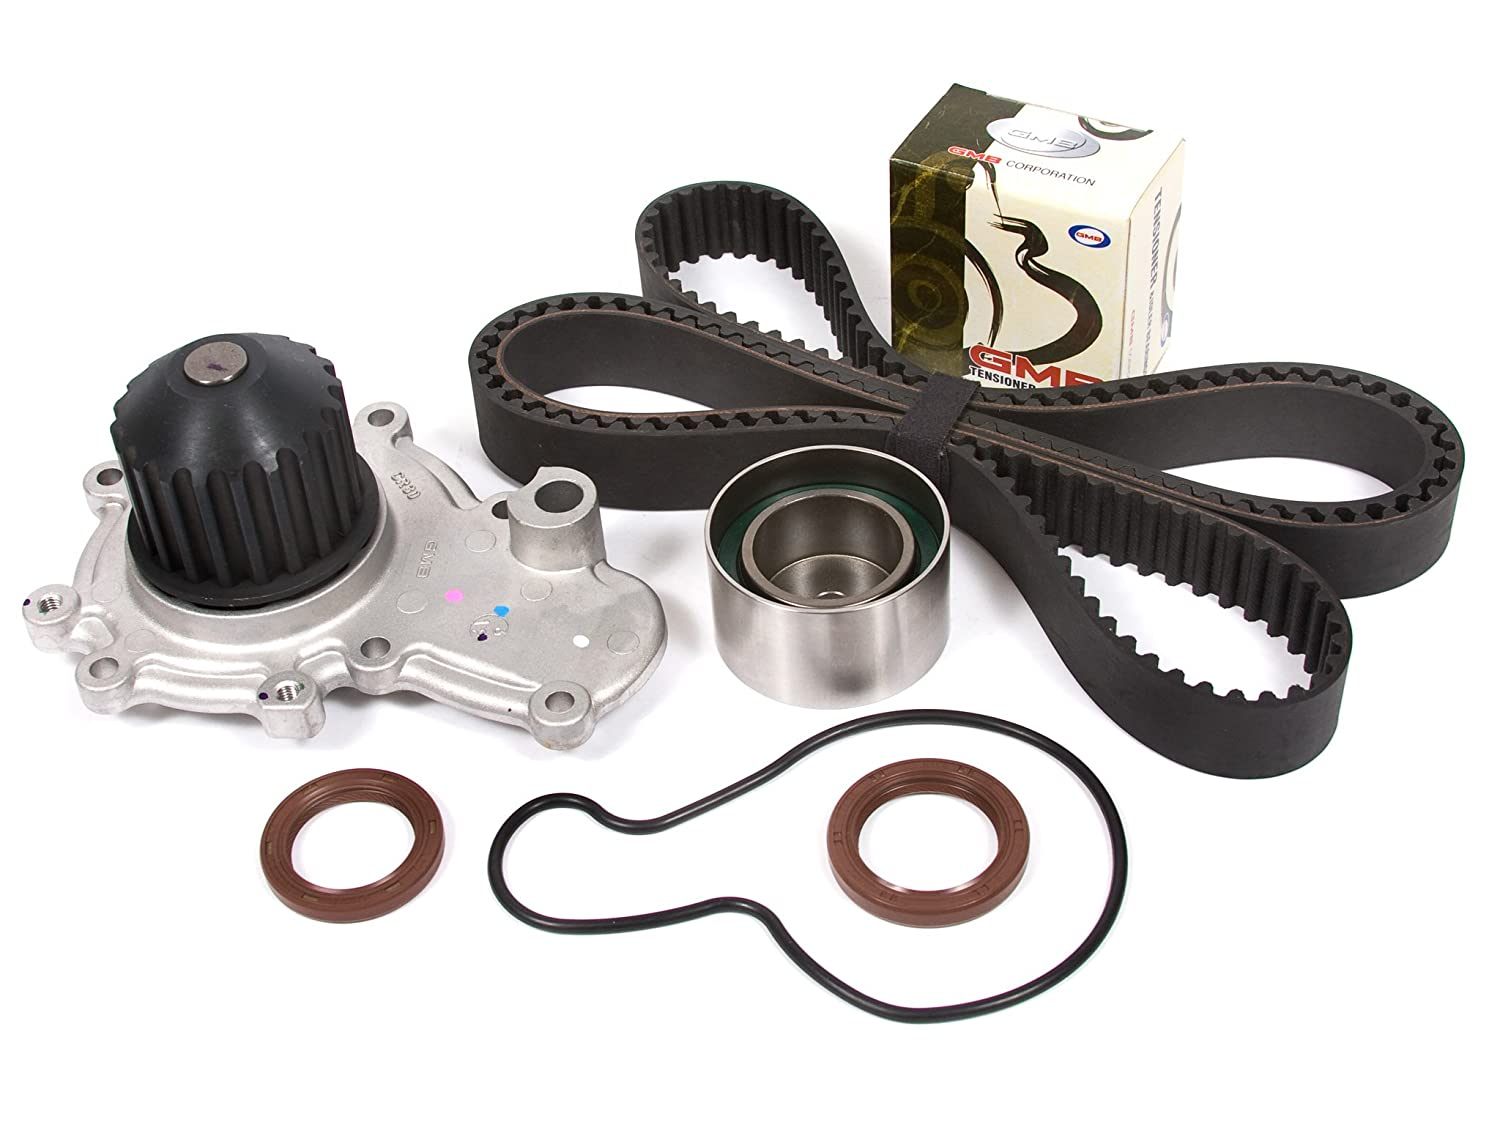 Evergreen TBK245WPT 95-99 Chrysler Dodge Plymouth 2.0 SOHC ECB Timing Belt Kit Water Pump Evergreen Parts And Components